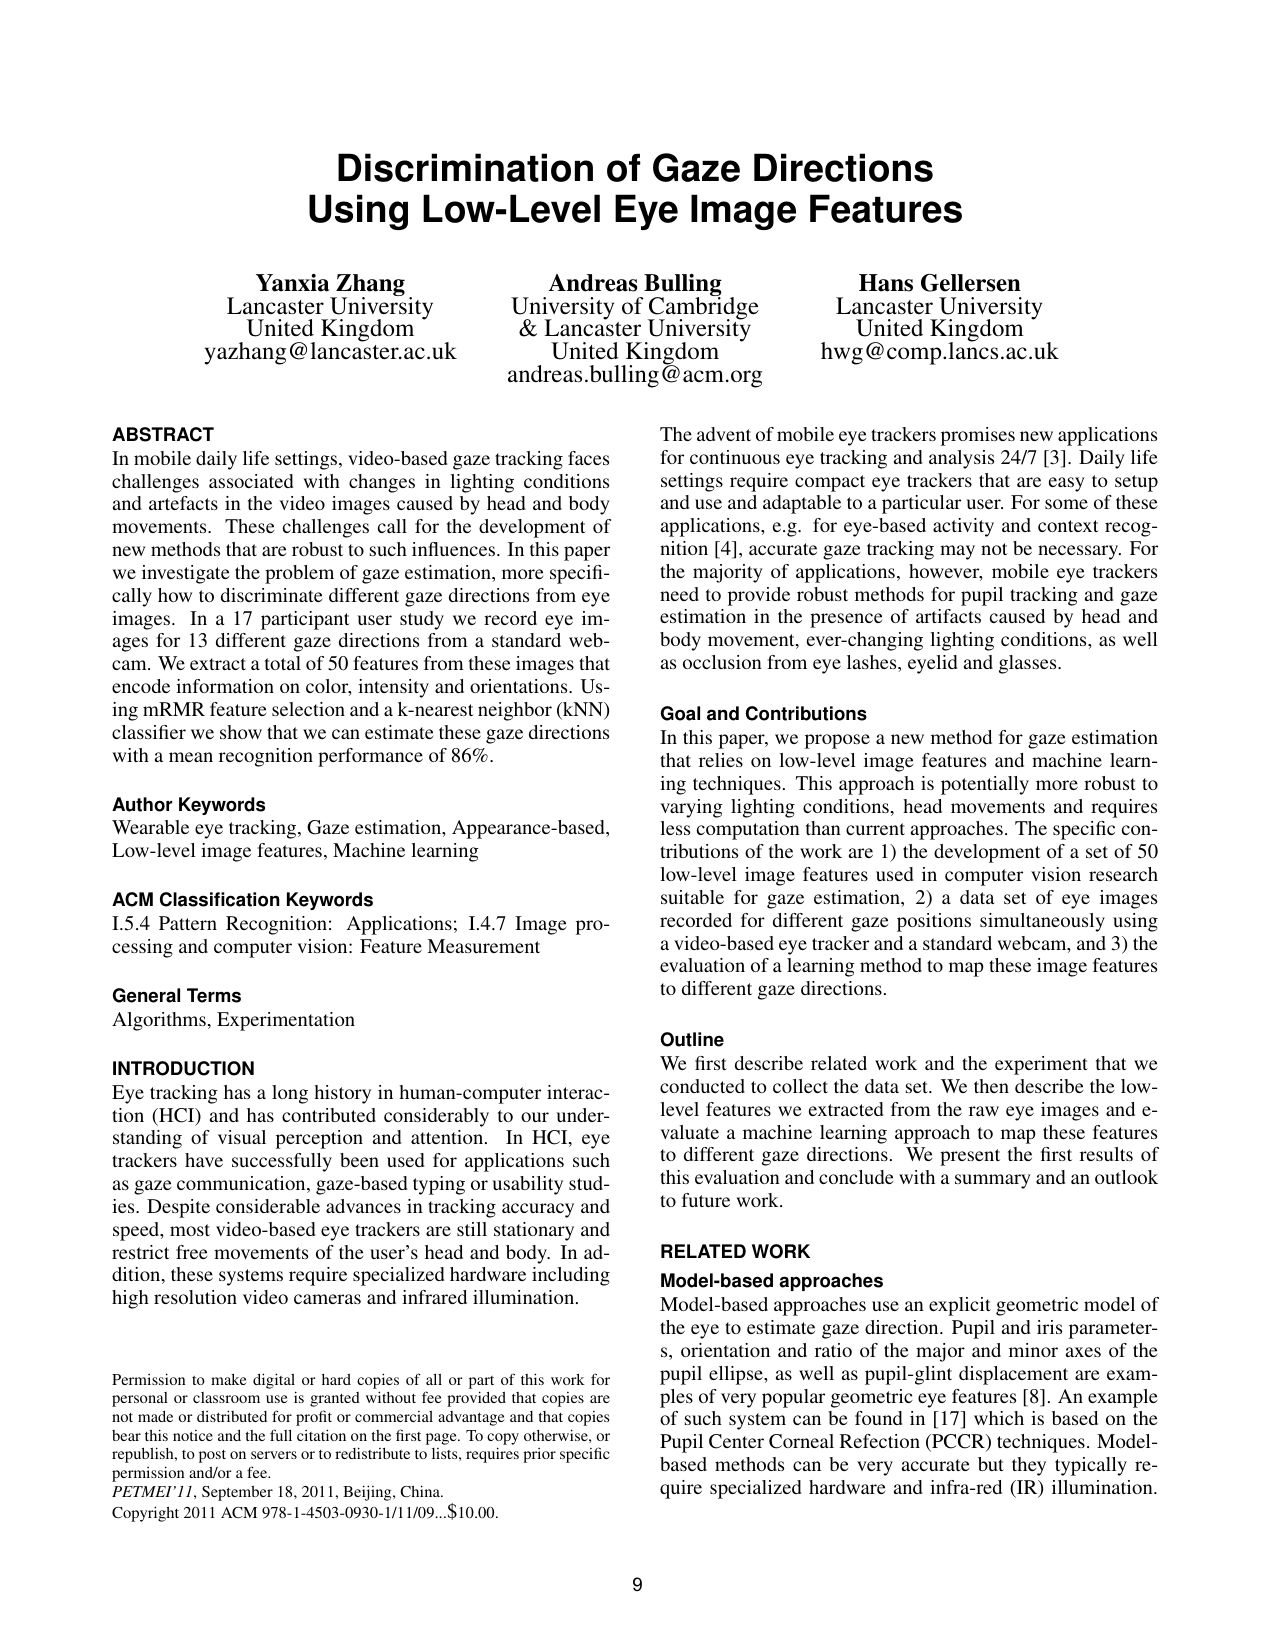 Discrimination of Gaze Directions Using Low-Level Eye Image Features